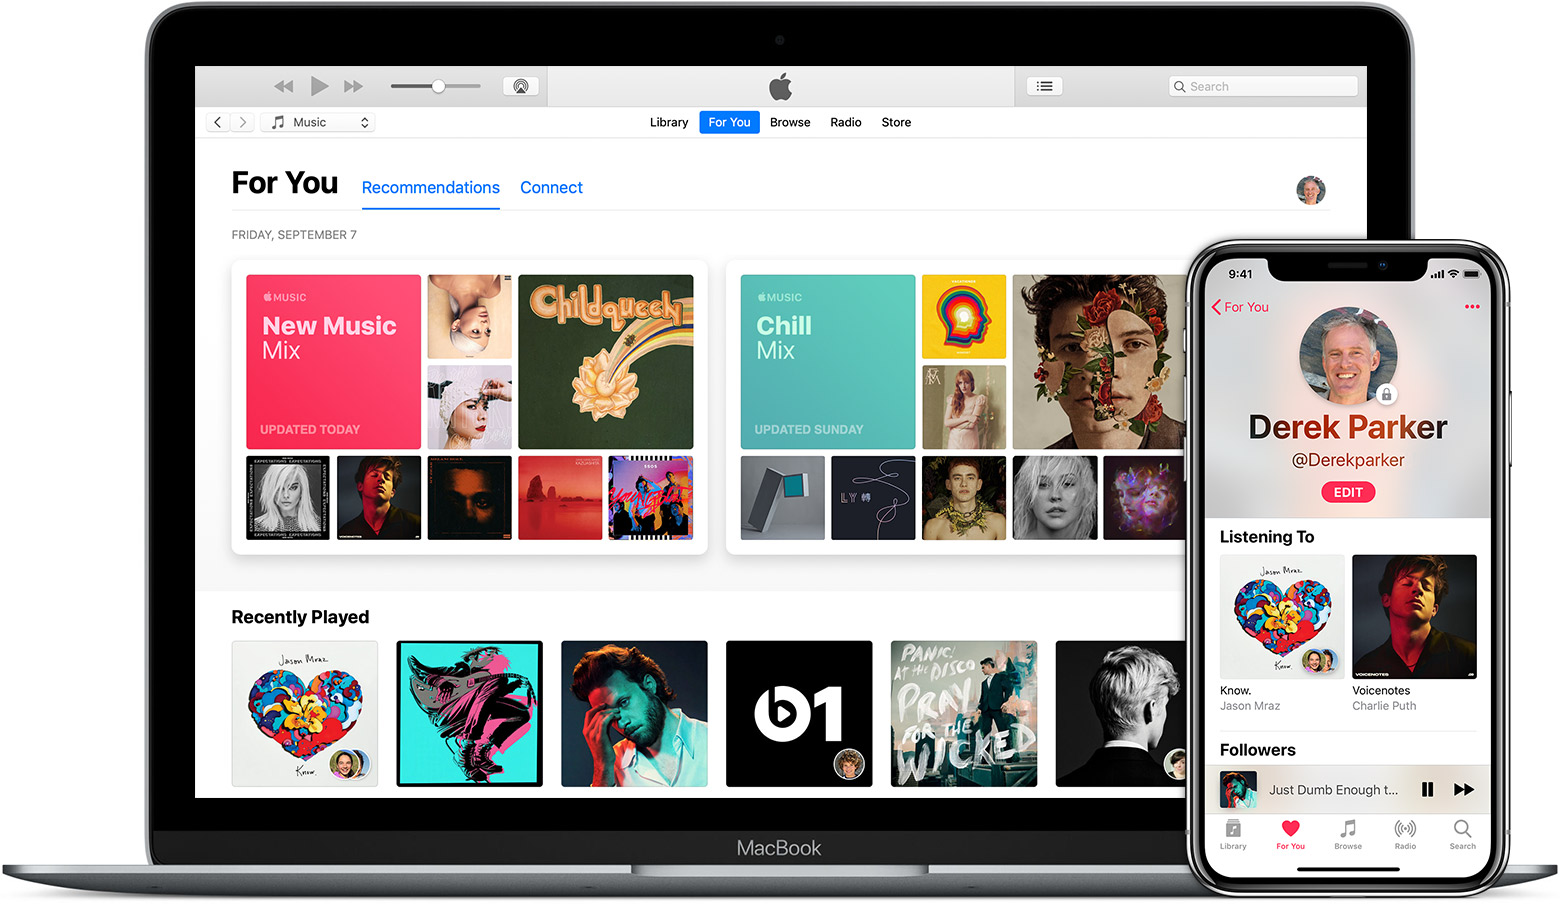 Mac showing For You music recommendations, and iPhone showing a family member's Listening To list